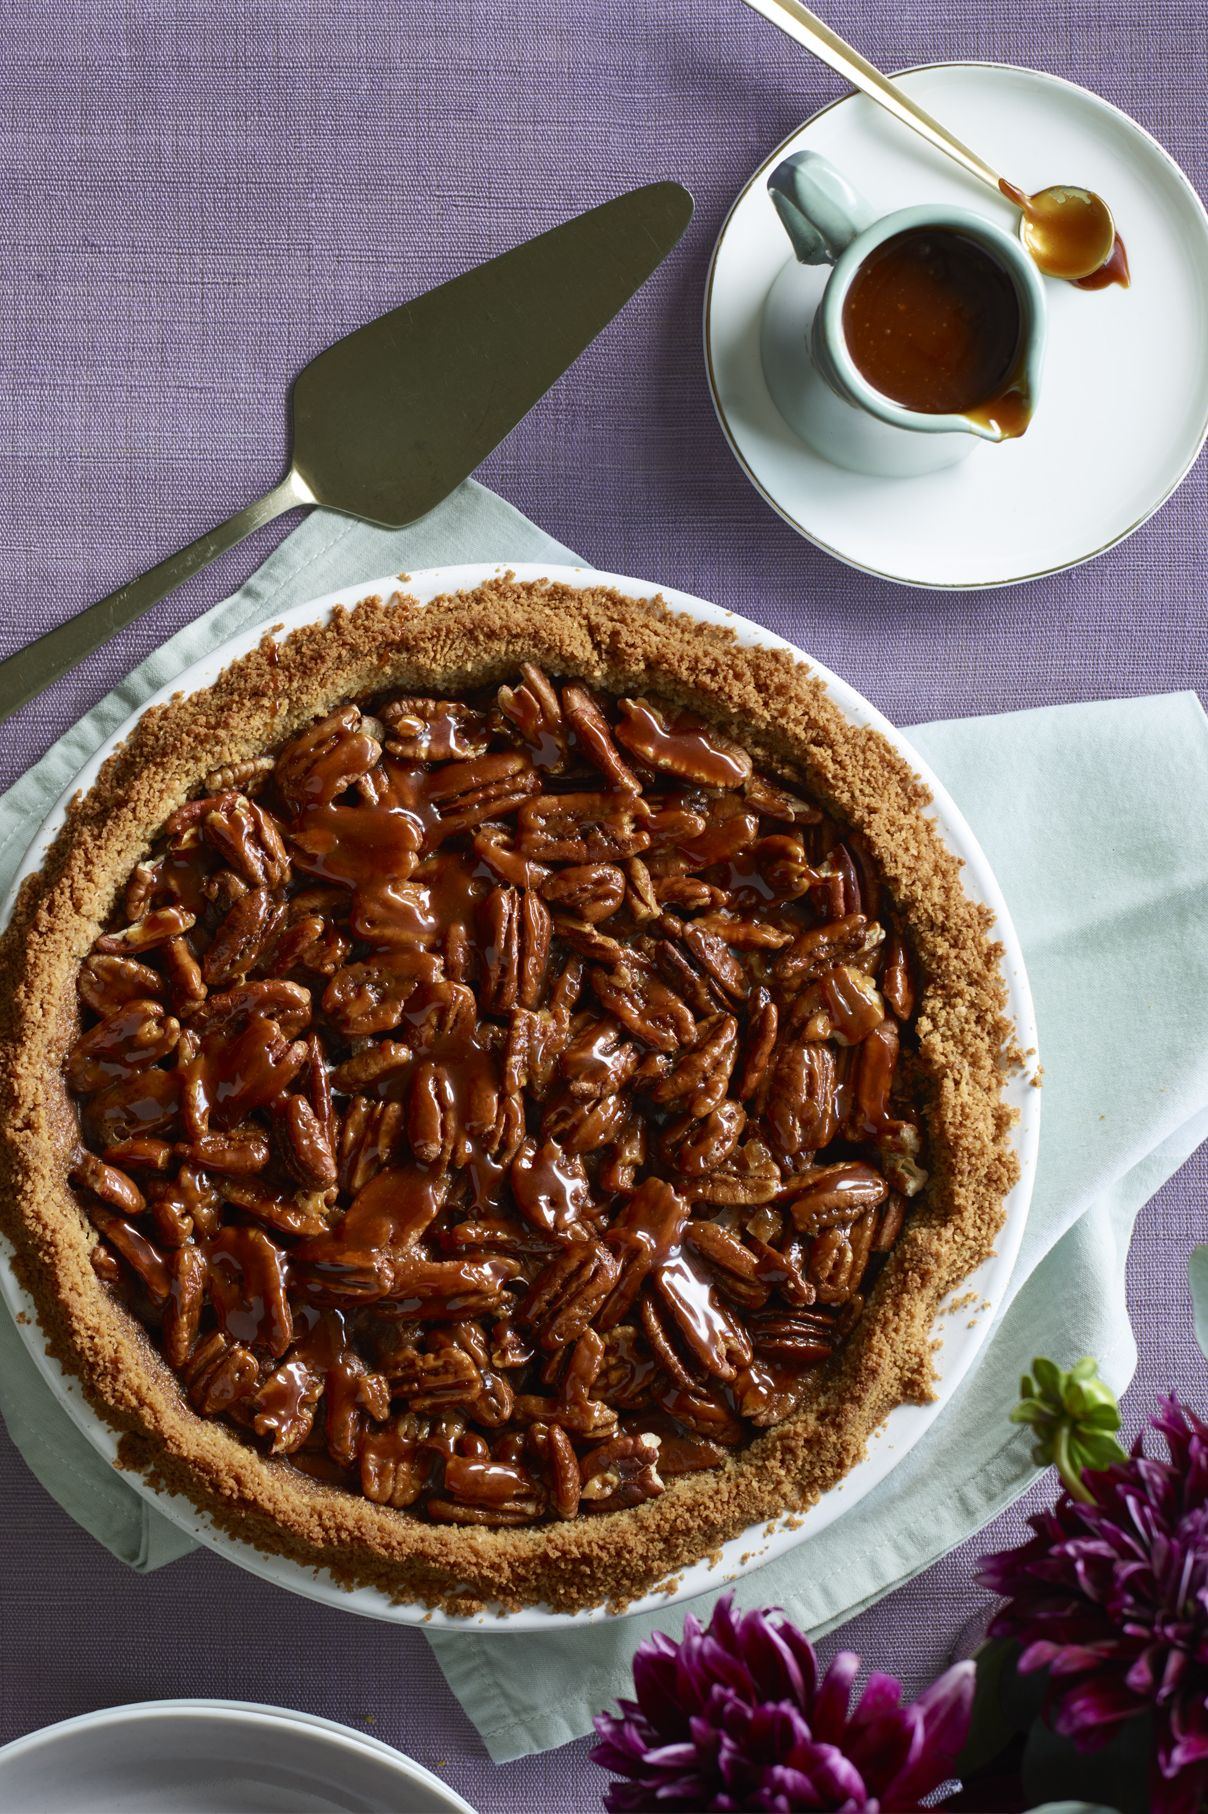 Salted Caramel Pecan and Chocolate Pie Thanksgiving Dessert